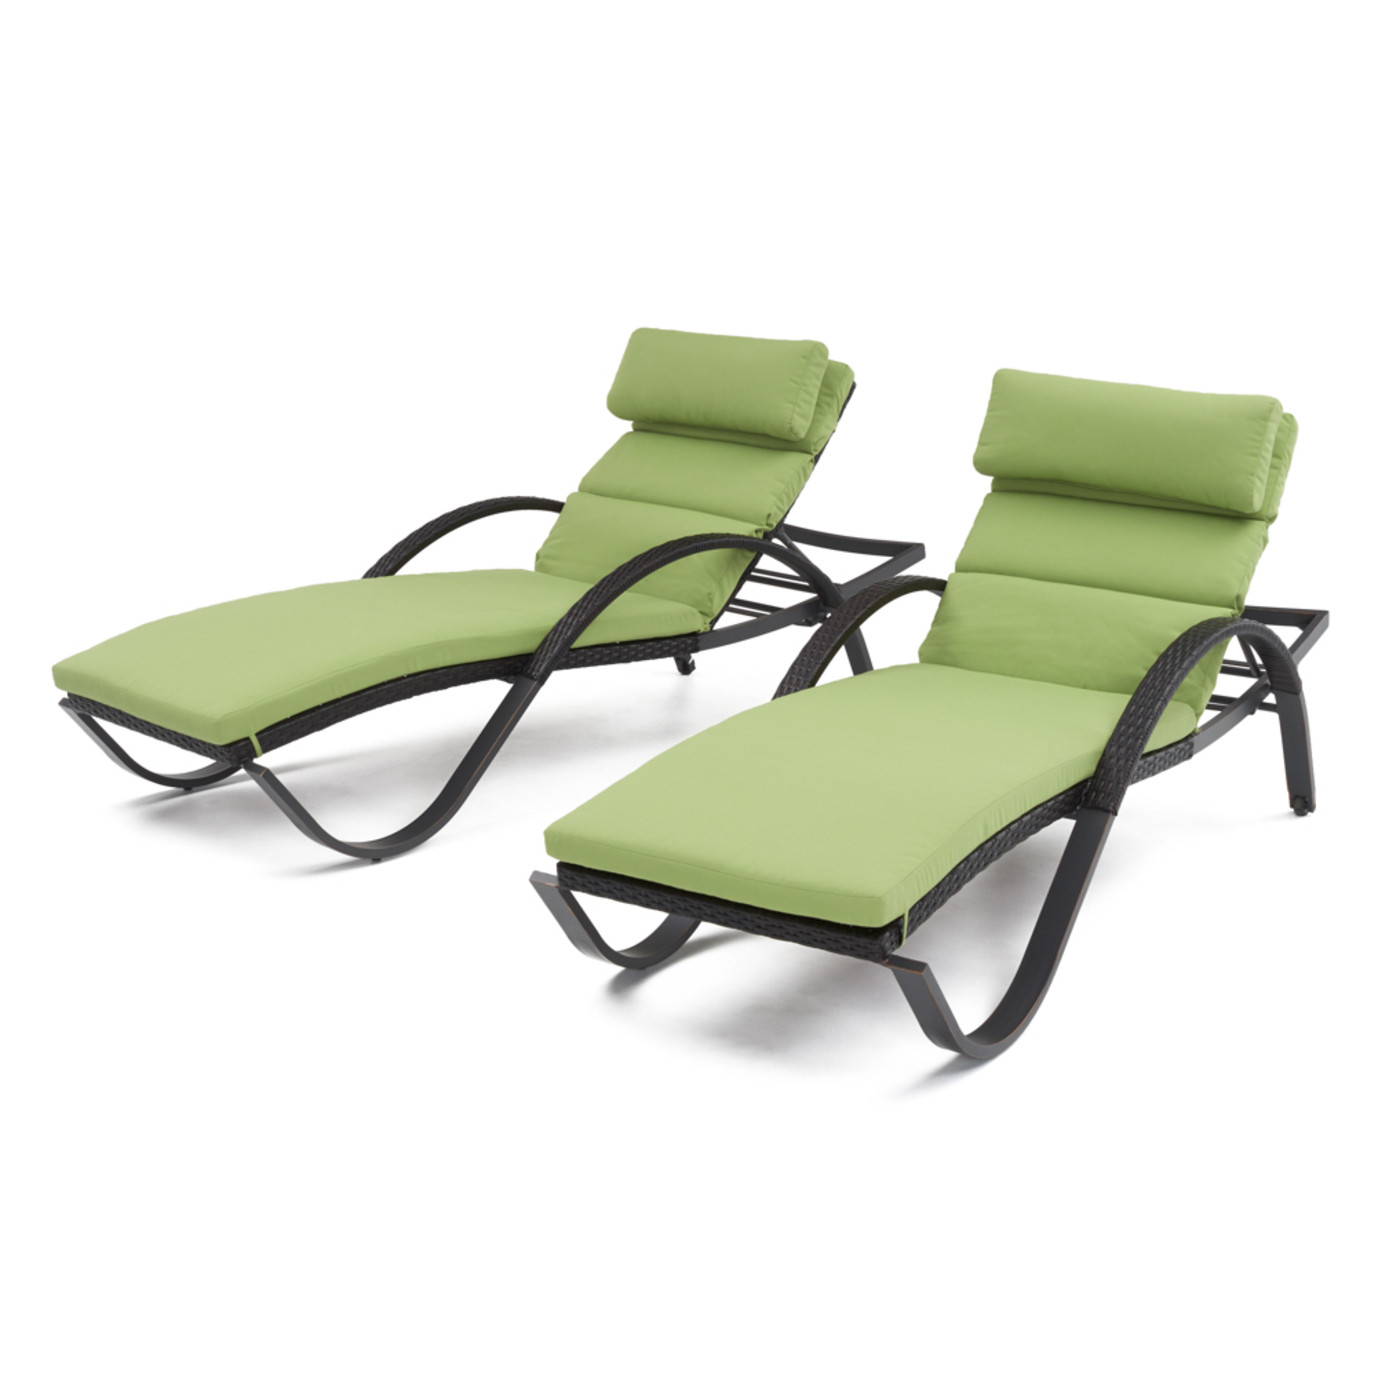 Deco™ Chaise Lounges with Cushions - Ginkgo Green